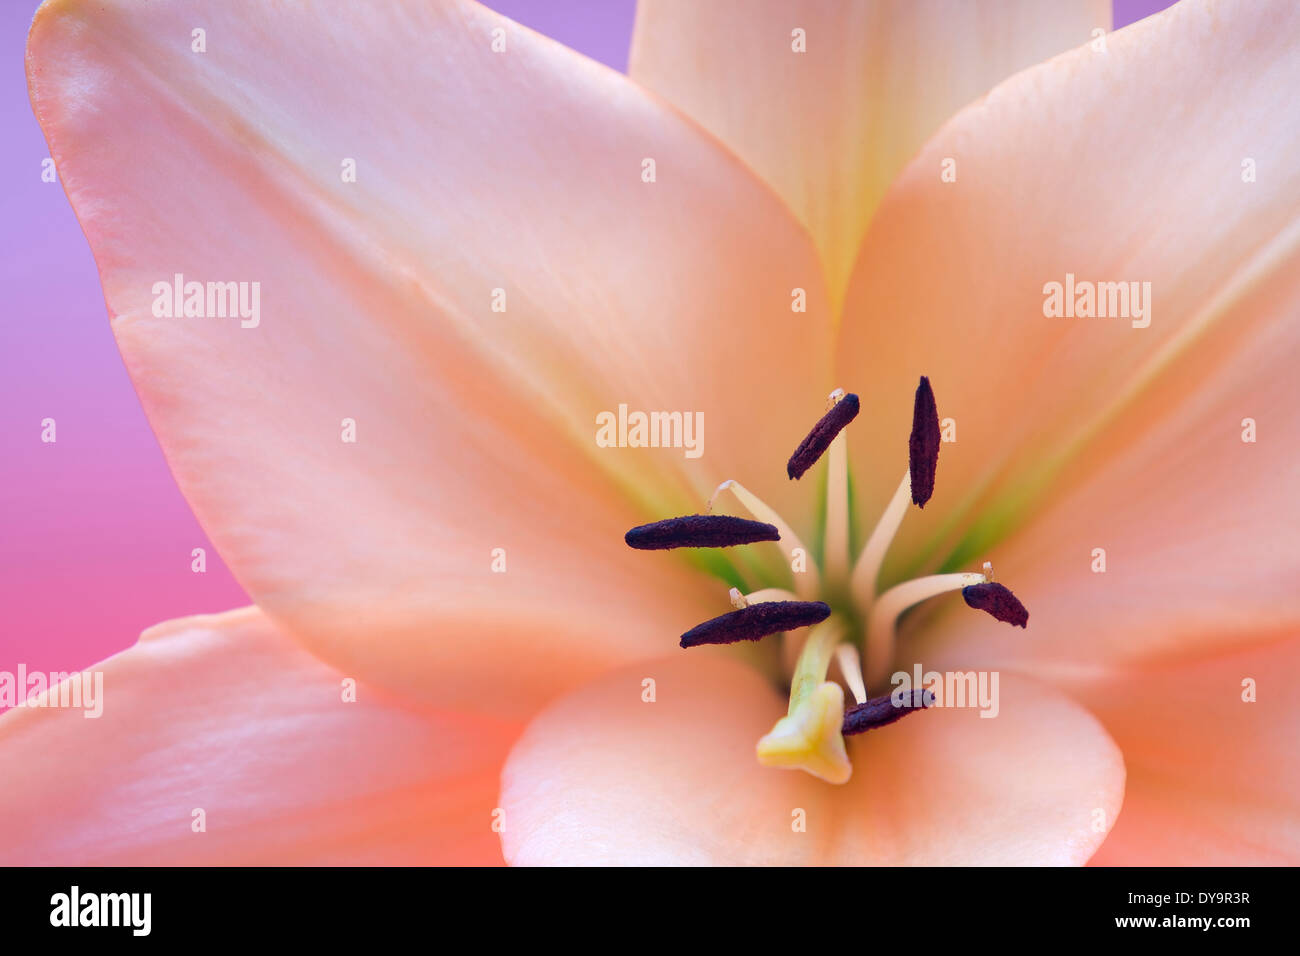 Madonna lily flower stock photos madonna lily flower stock images close up view of nice fresh madonna lily flower stock image izmirmasajfo